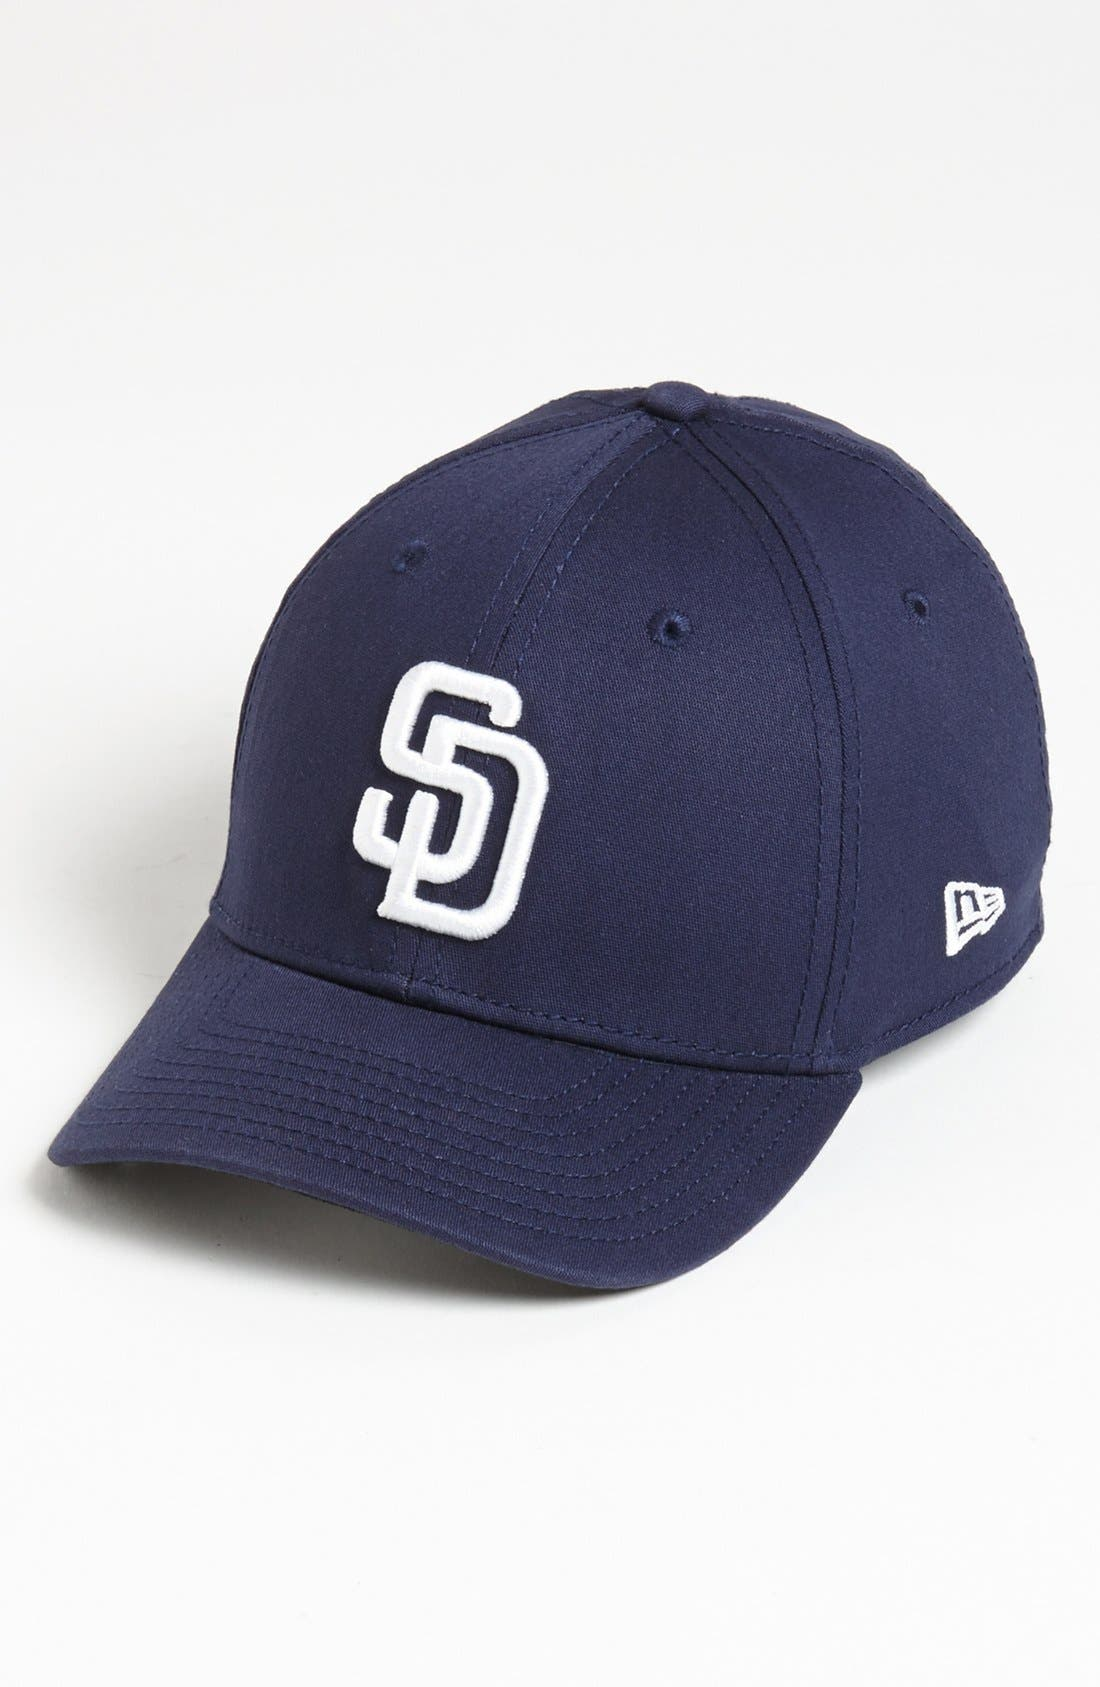 Alternate Image 1 Selected - New Era Cap 'San Diego Padres - Tie Breaker' Baseball Cap (Big Boys)